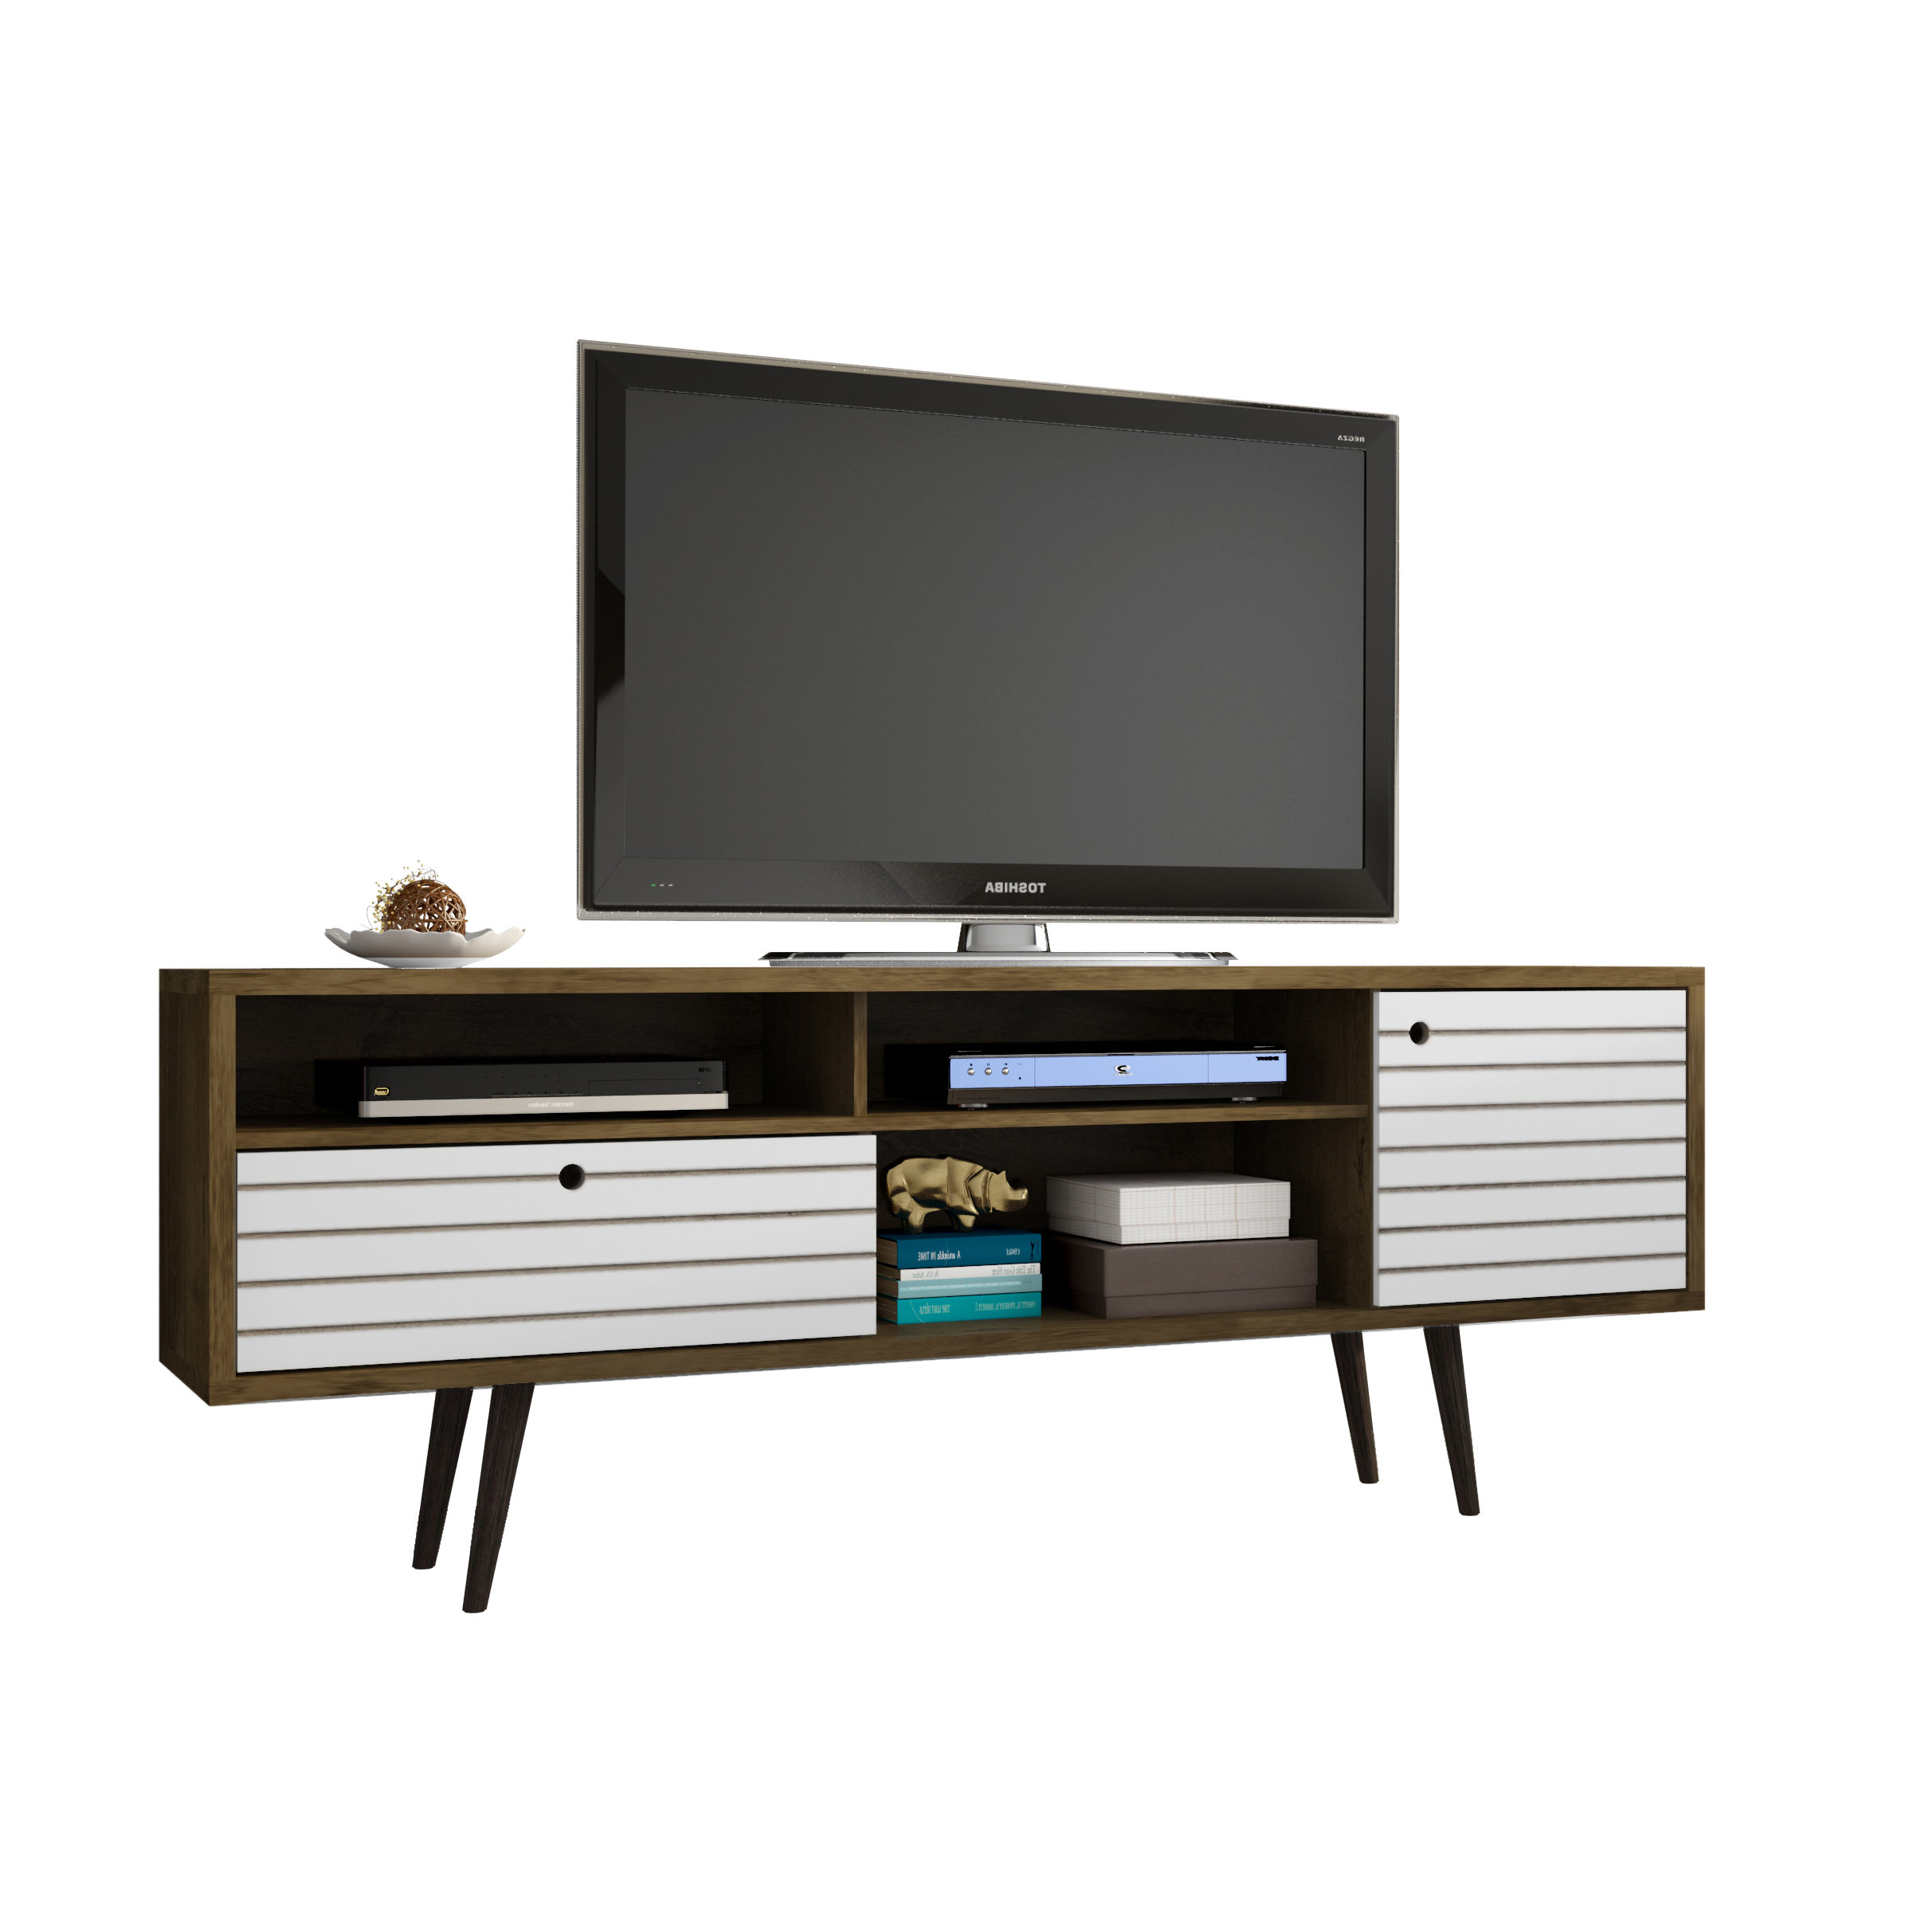 Allmodern Intended For Well Known Contemporary Tv Cabinets For Flat Screens (Gallery 7 of 20)